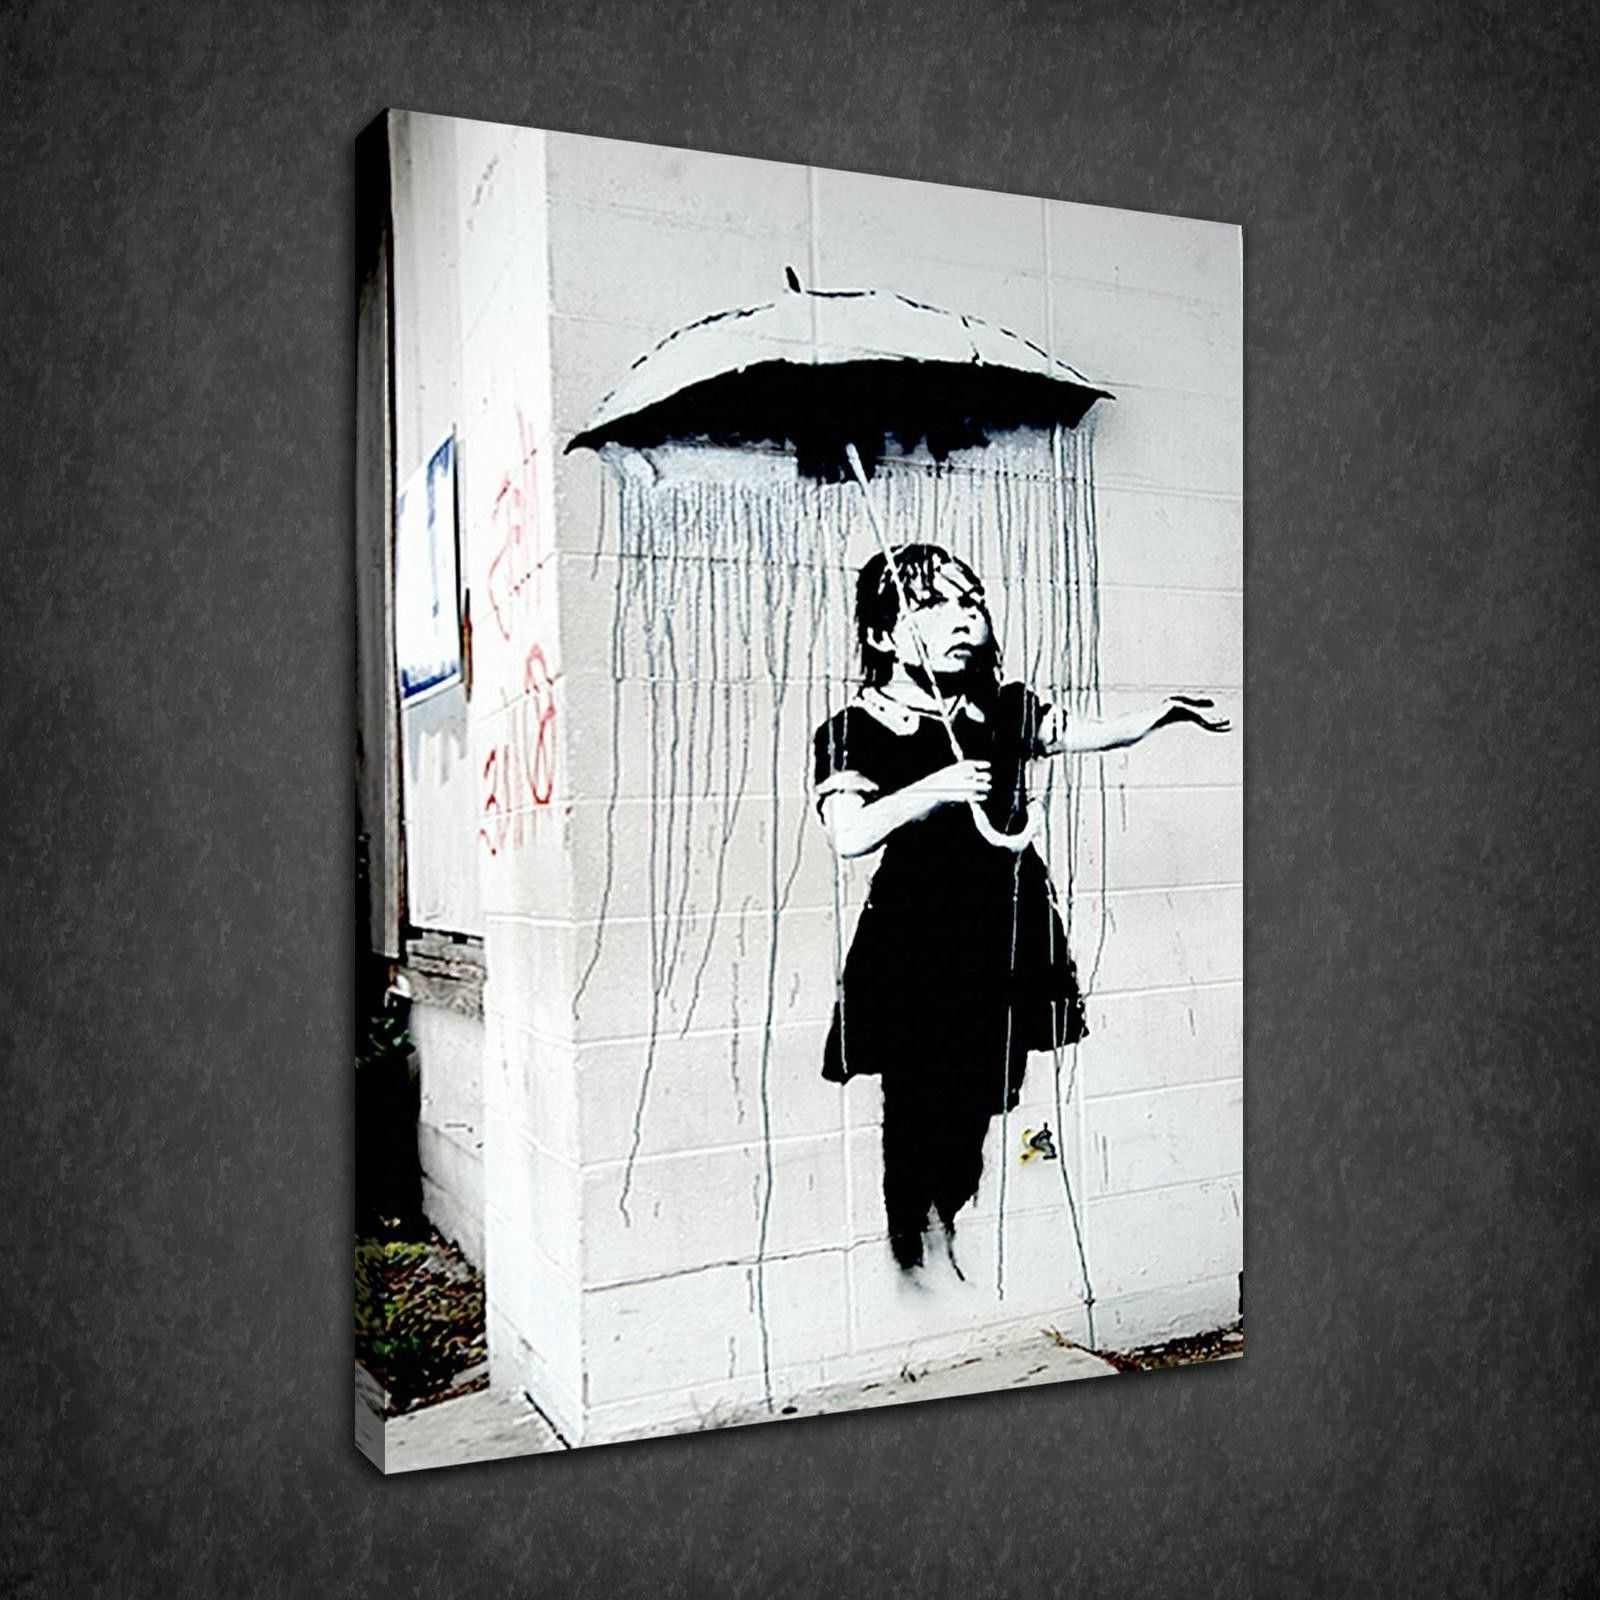 image gallery of banksy wall art canvas view 1 of 15 photos